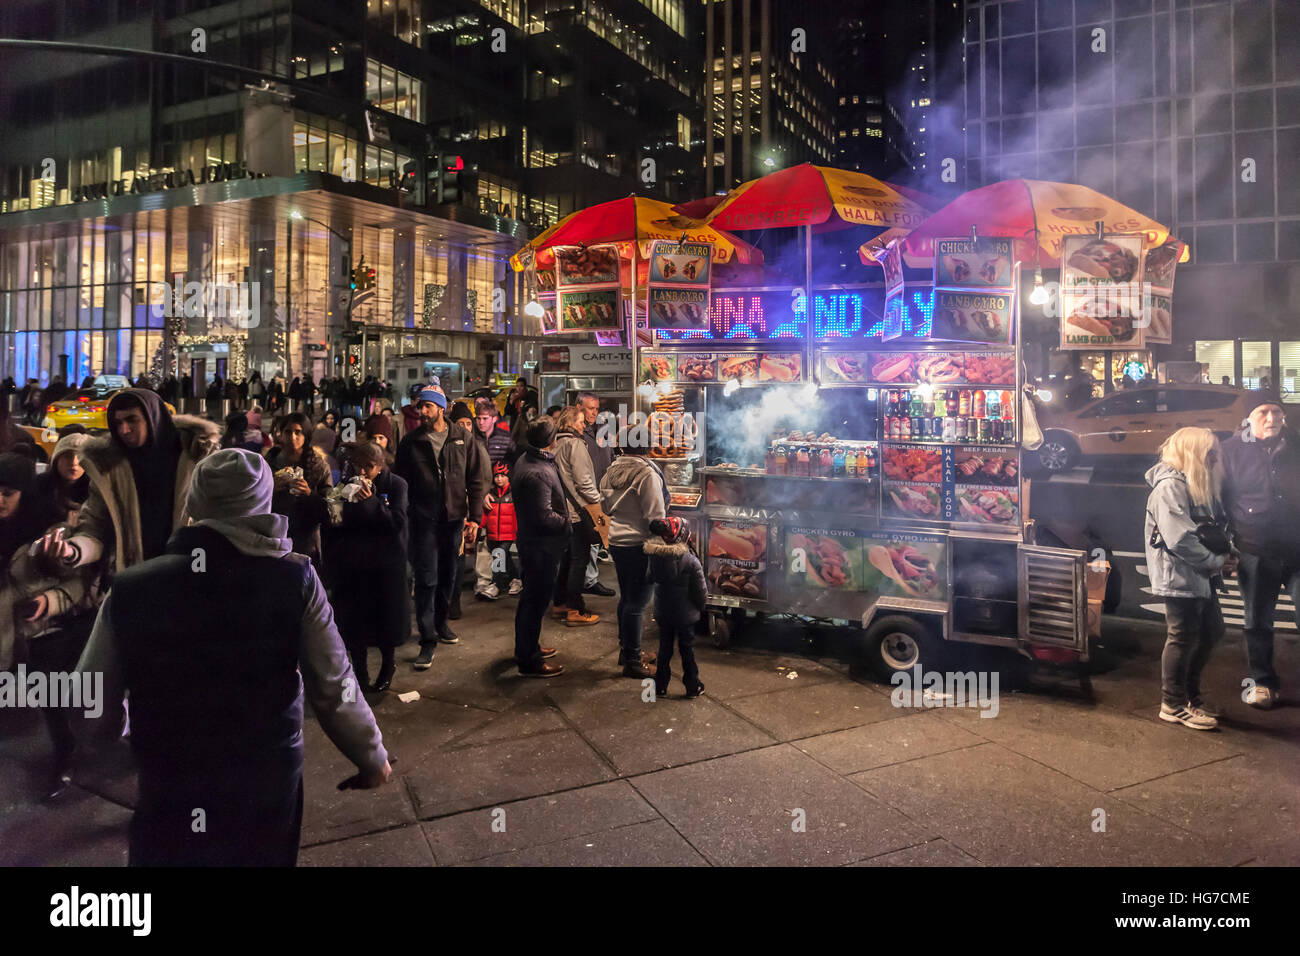 Fast food on 6th Ave near Bank of America Towers New York. - Stock Image